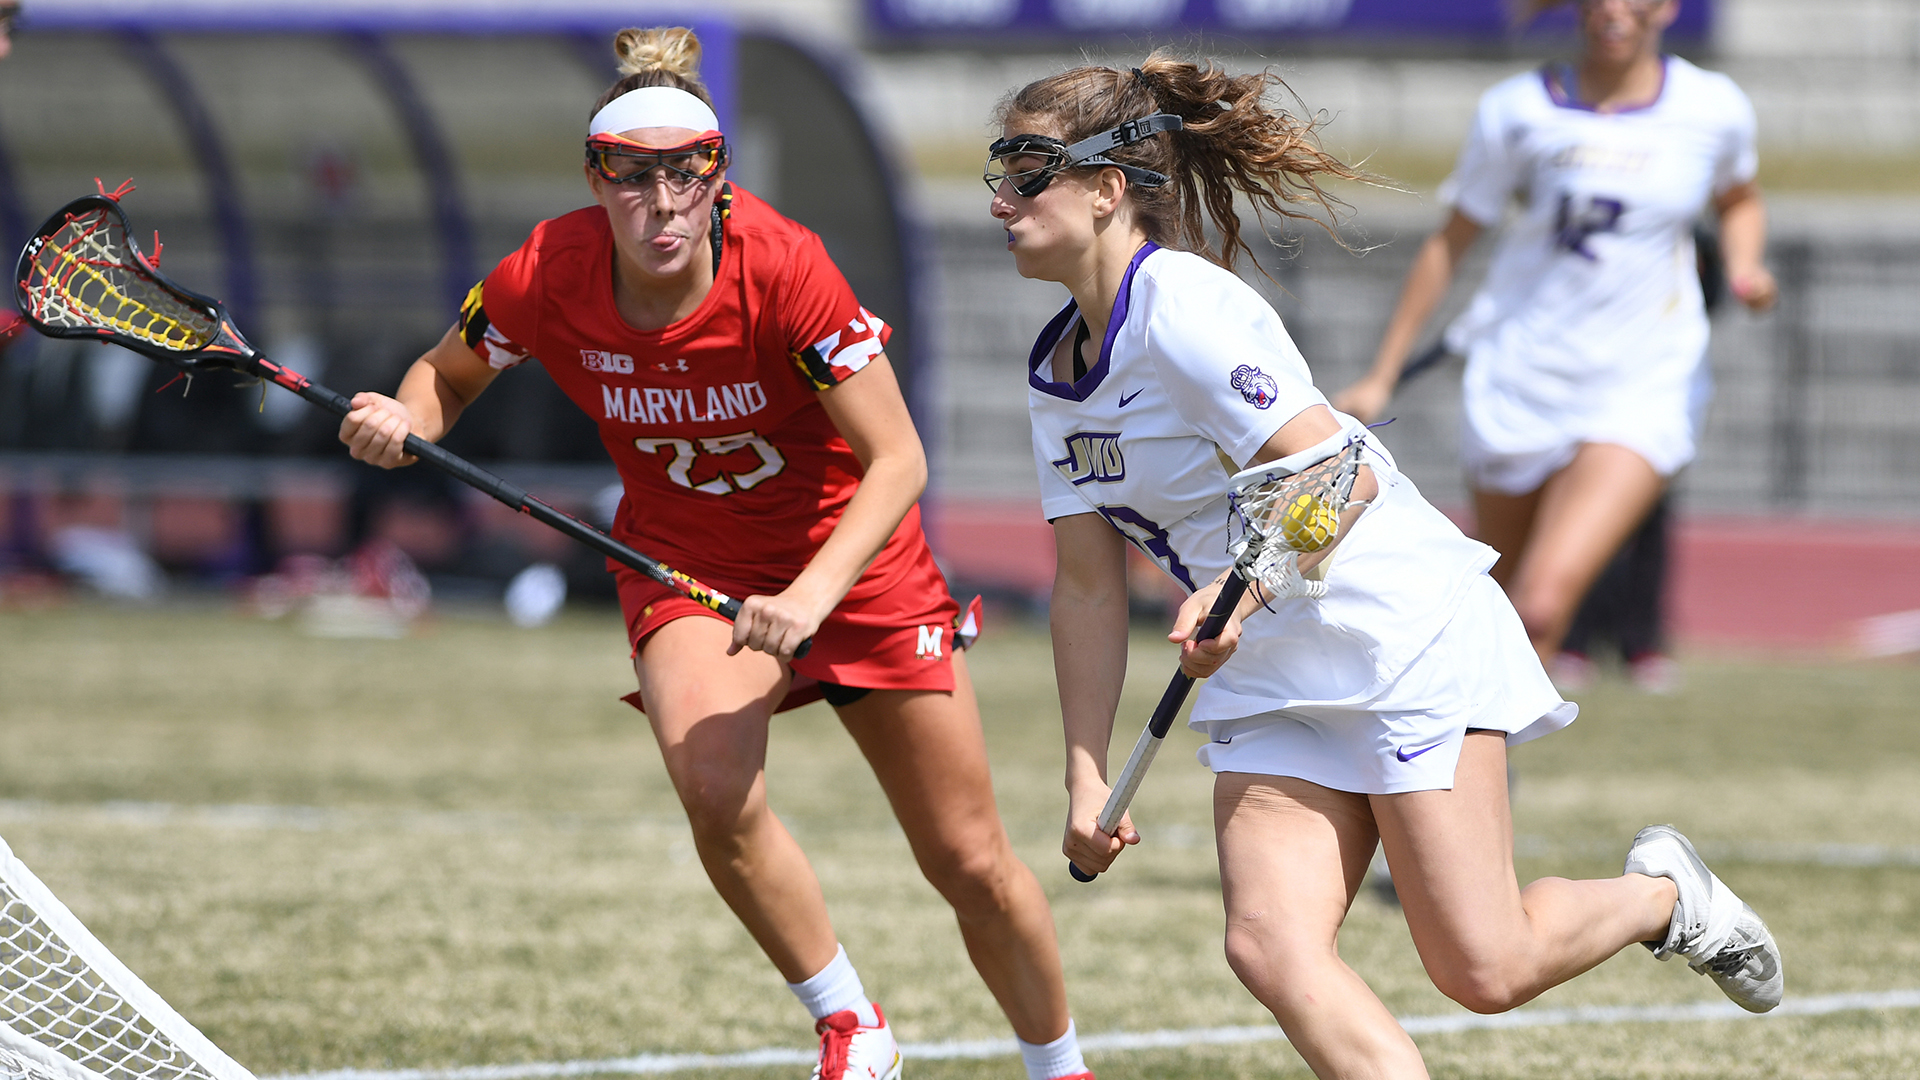 Lacrosse: Dukes Drop Second Straight in Loss to No. 2 Maryland